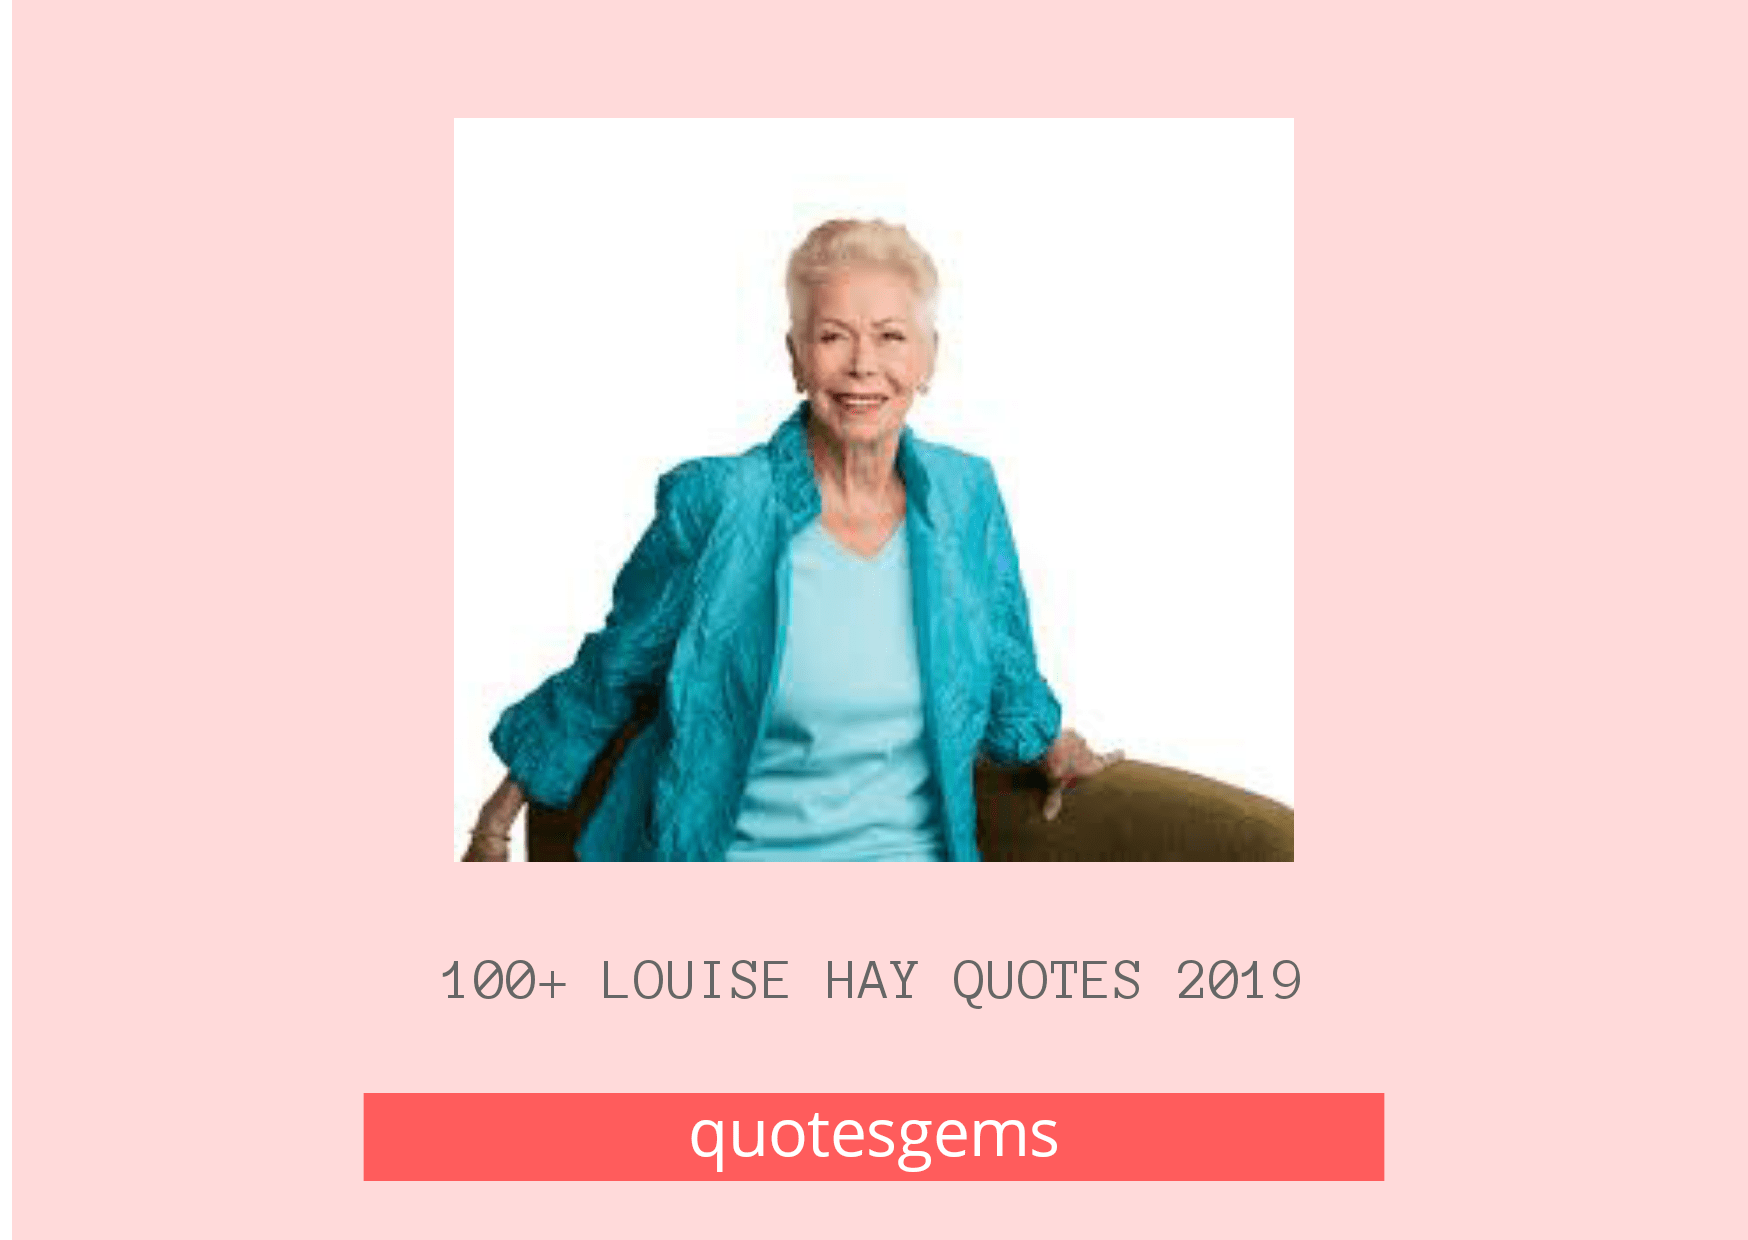 Inspirational Louise Hay Quotes 2019 [